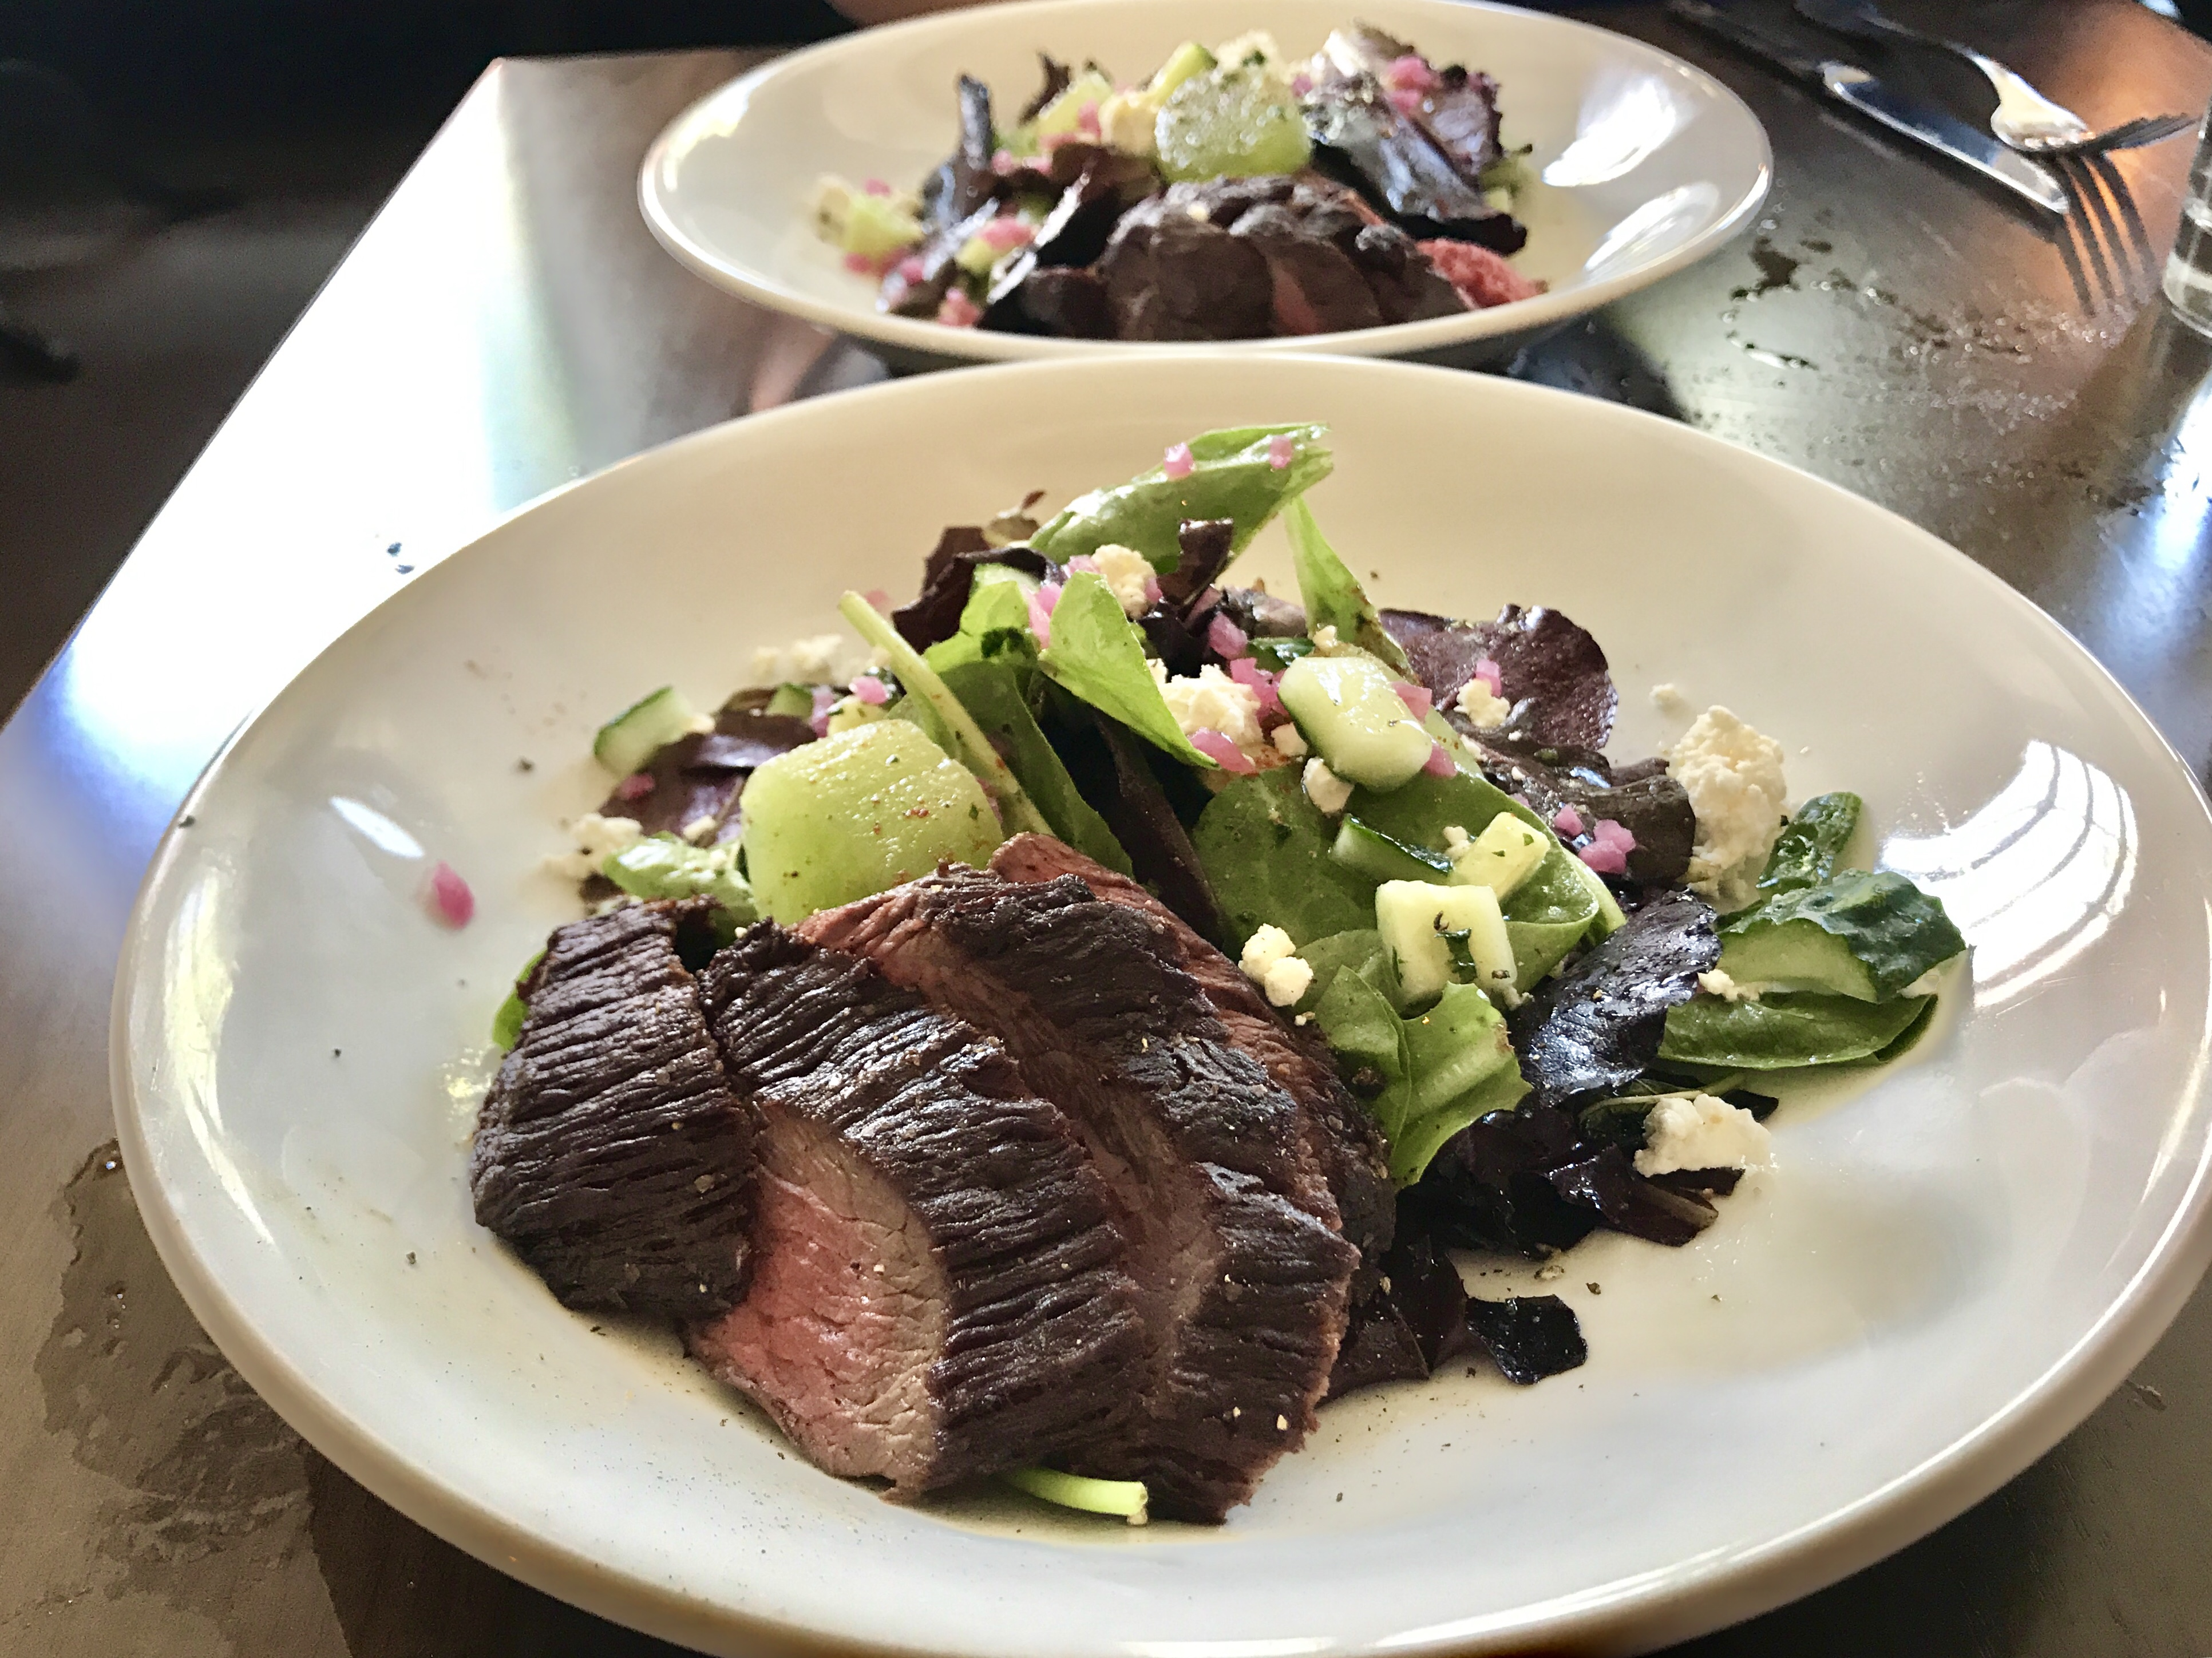 The Mustard and Melon Salad with perfectly cooked Arizona sirloin for lunch from Augstin Kitchen at Mercado San Augustin in Tucson, Arizona